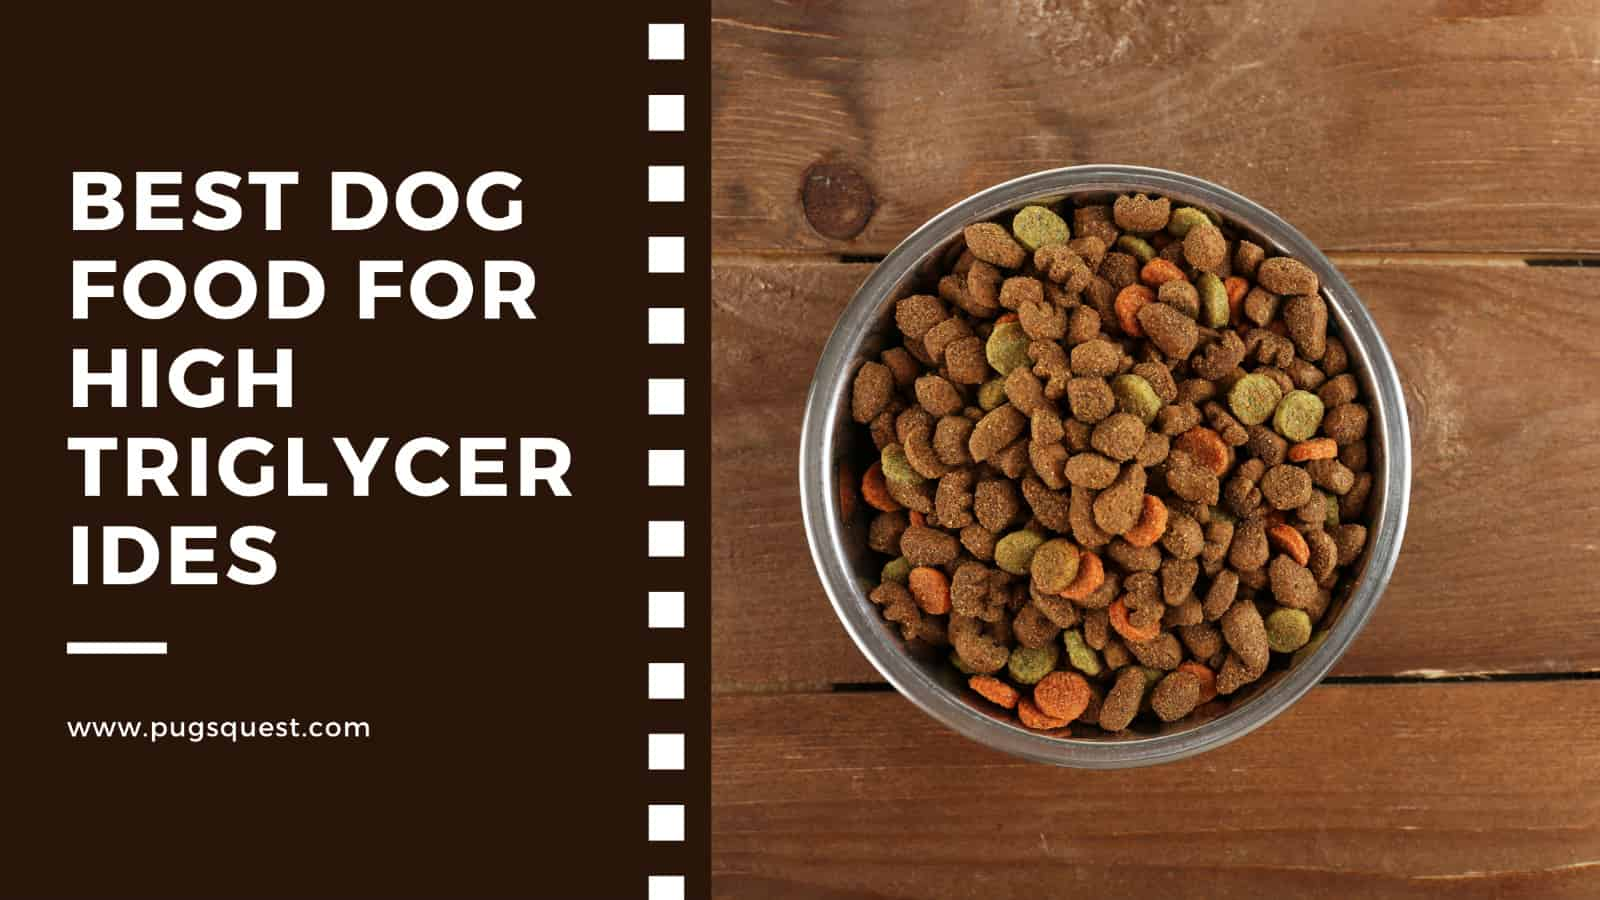 Best Dog Food for High Triglycerides